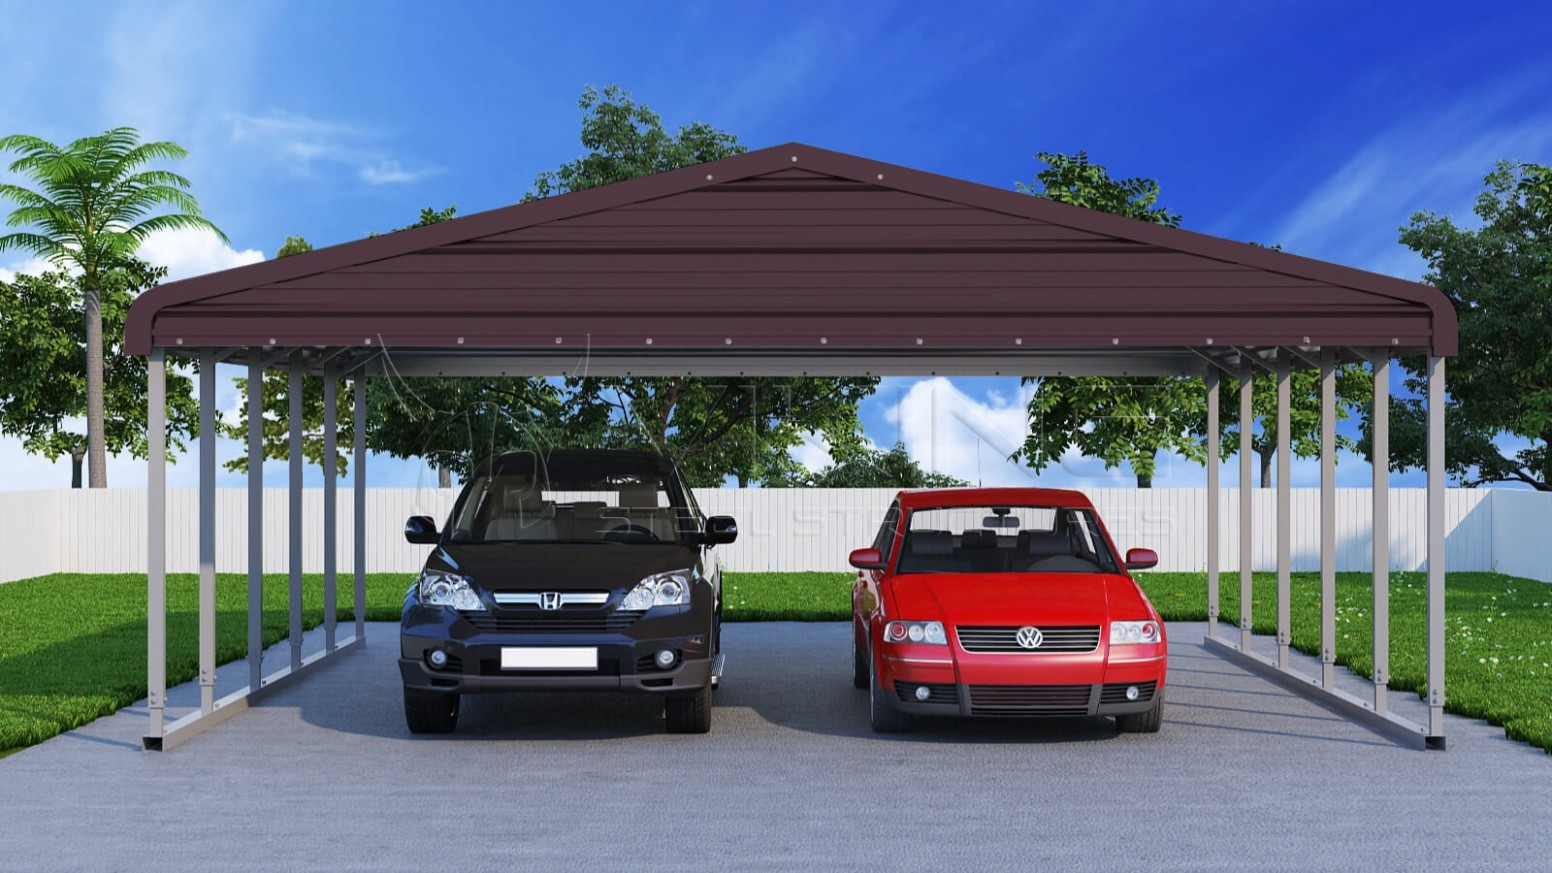 10 Things That You Never Expect On Carport Styles | carport styles